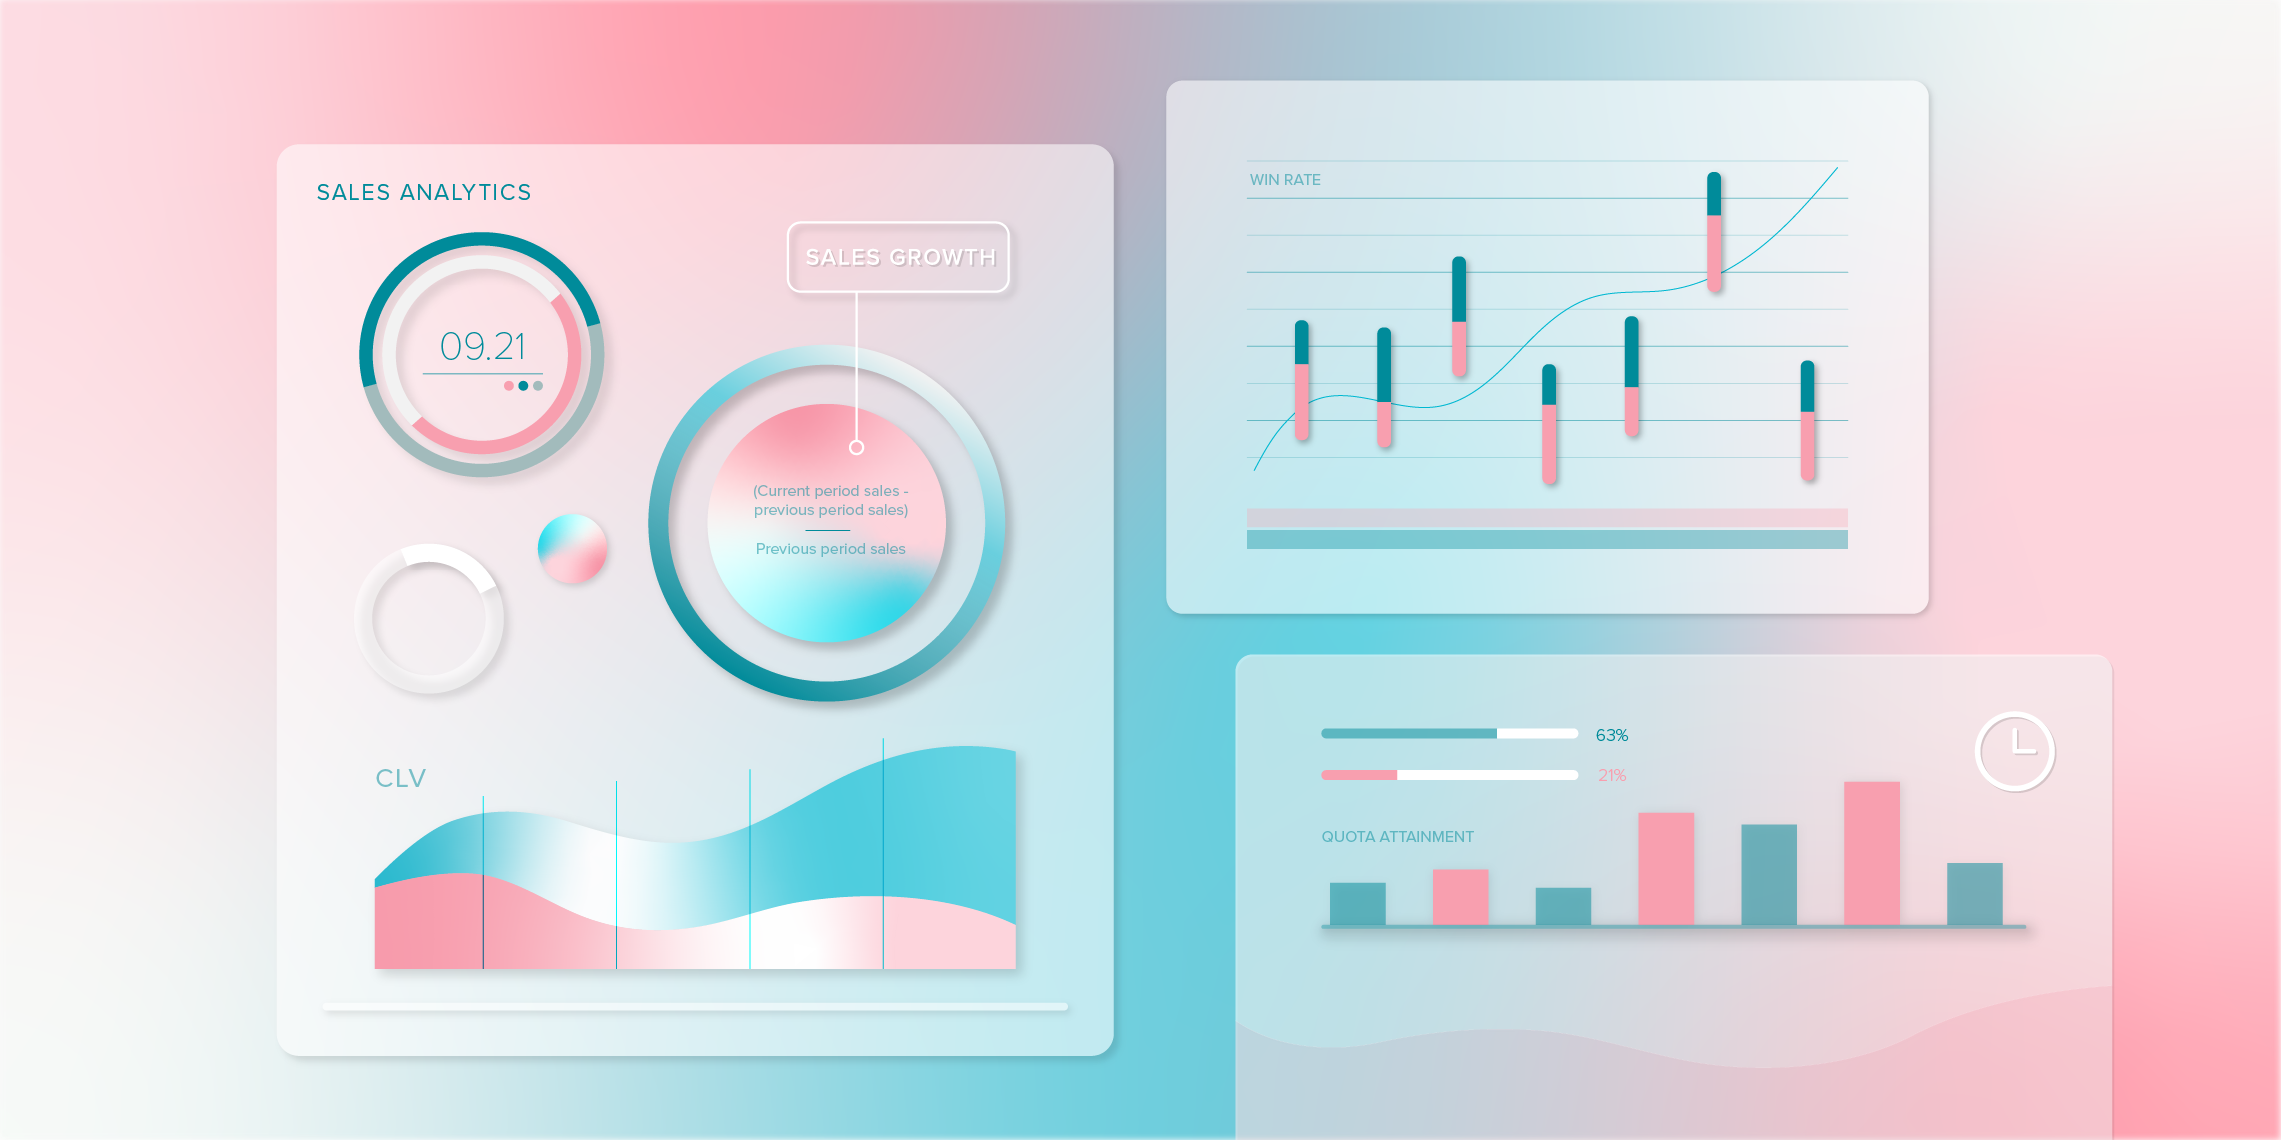 Why You Need Sales Analytics